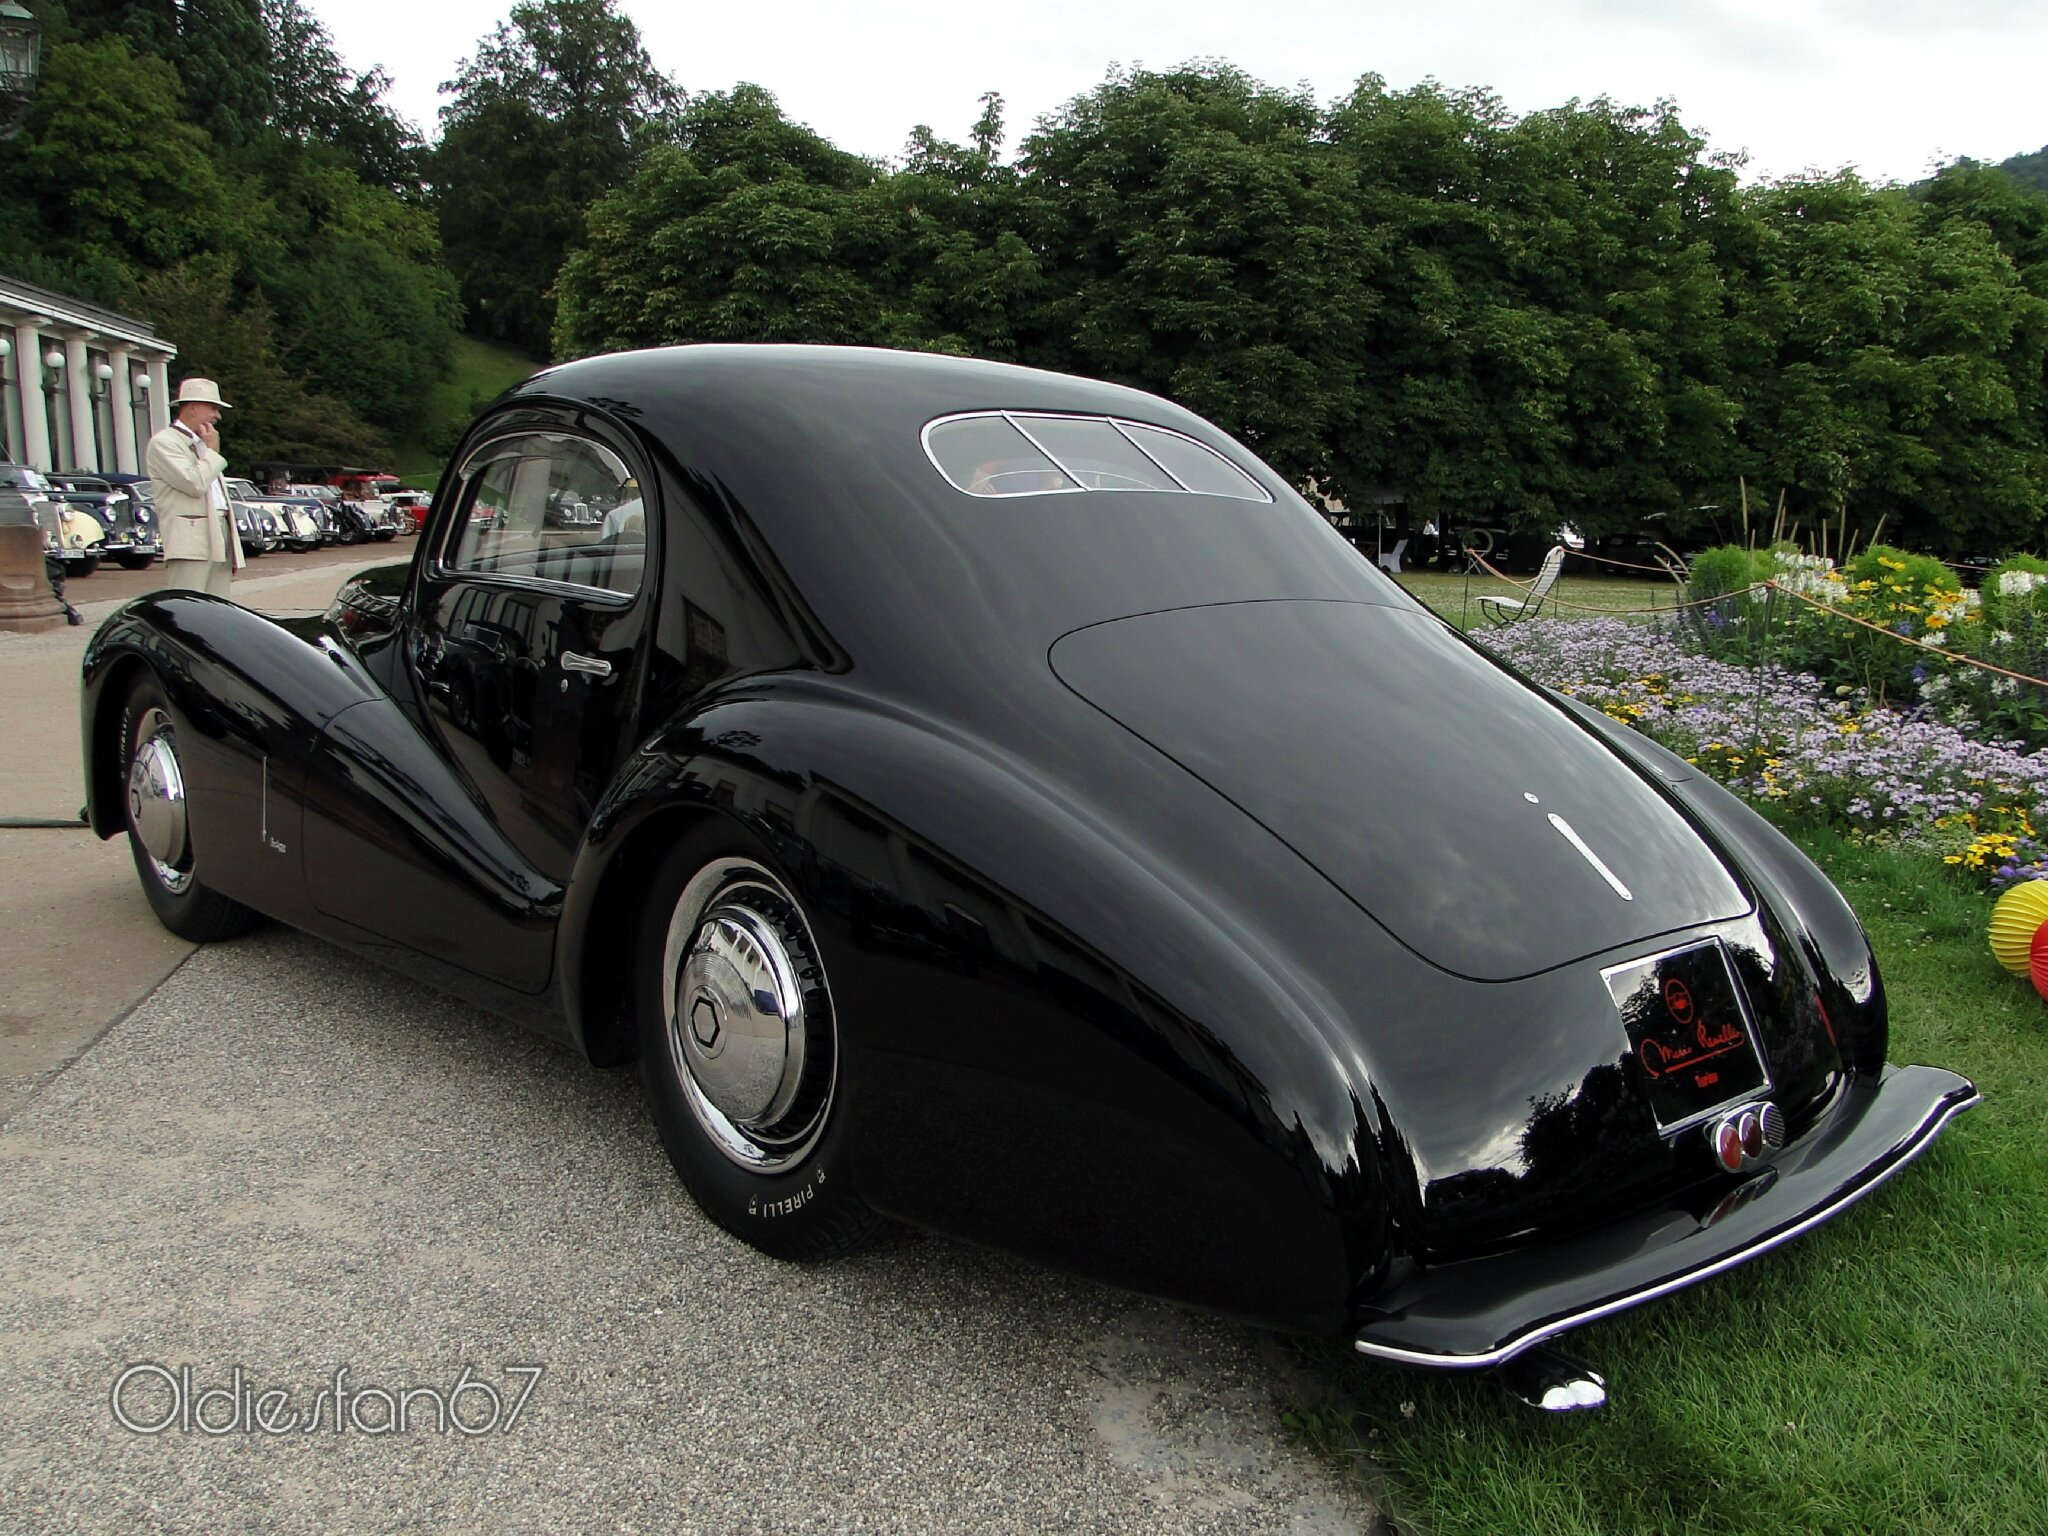 alfa romeo 6c 2500 ss bertone 1942 oldiesfan67 mon blog auto. Black Bedroom Furniture Sets. Home Design Ideas